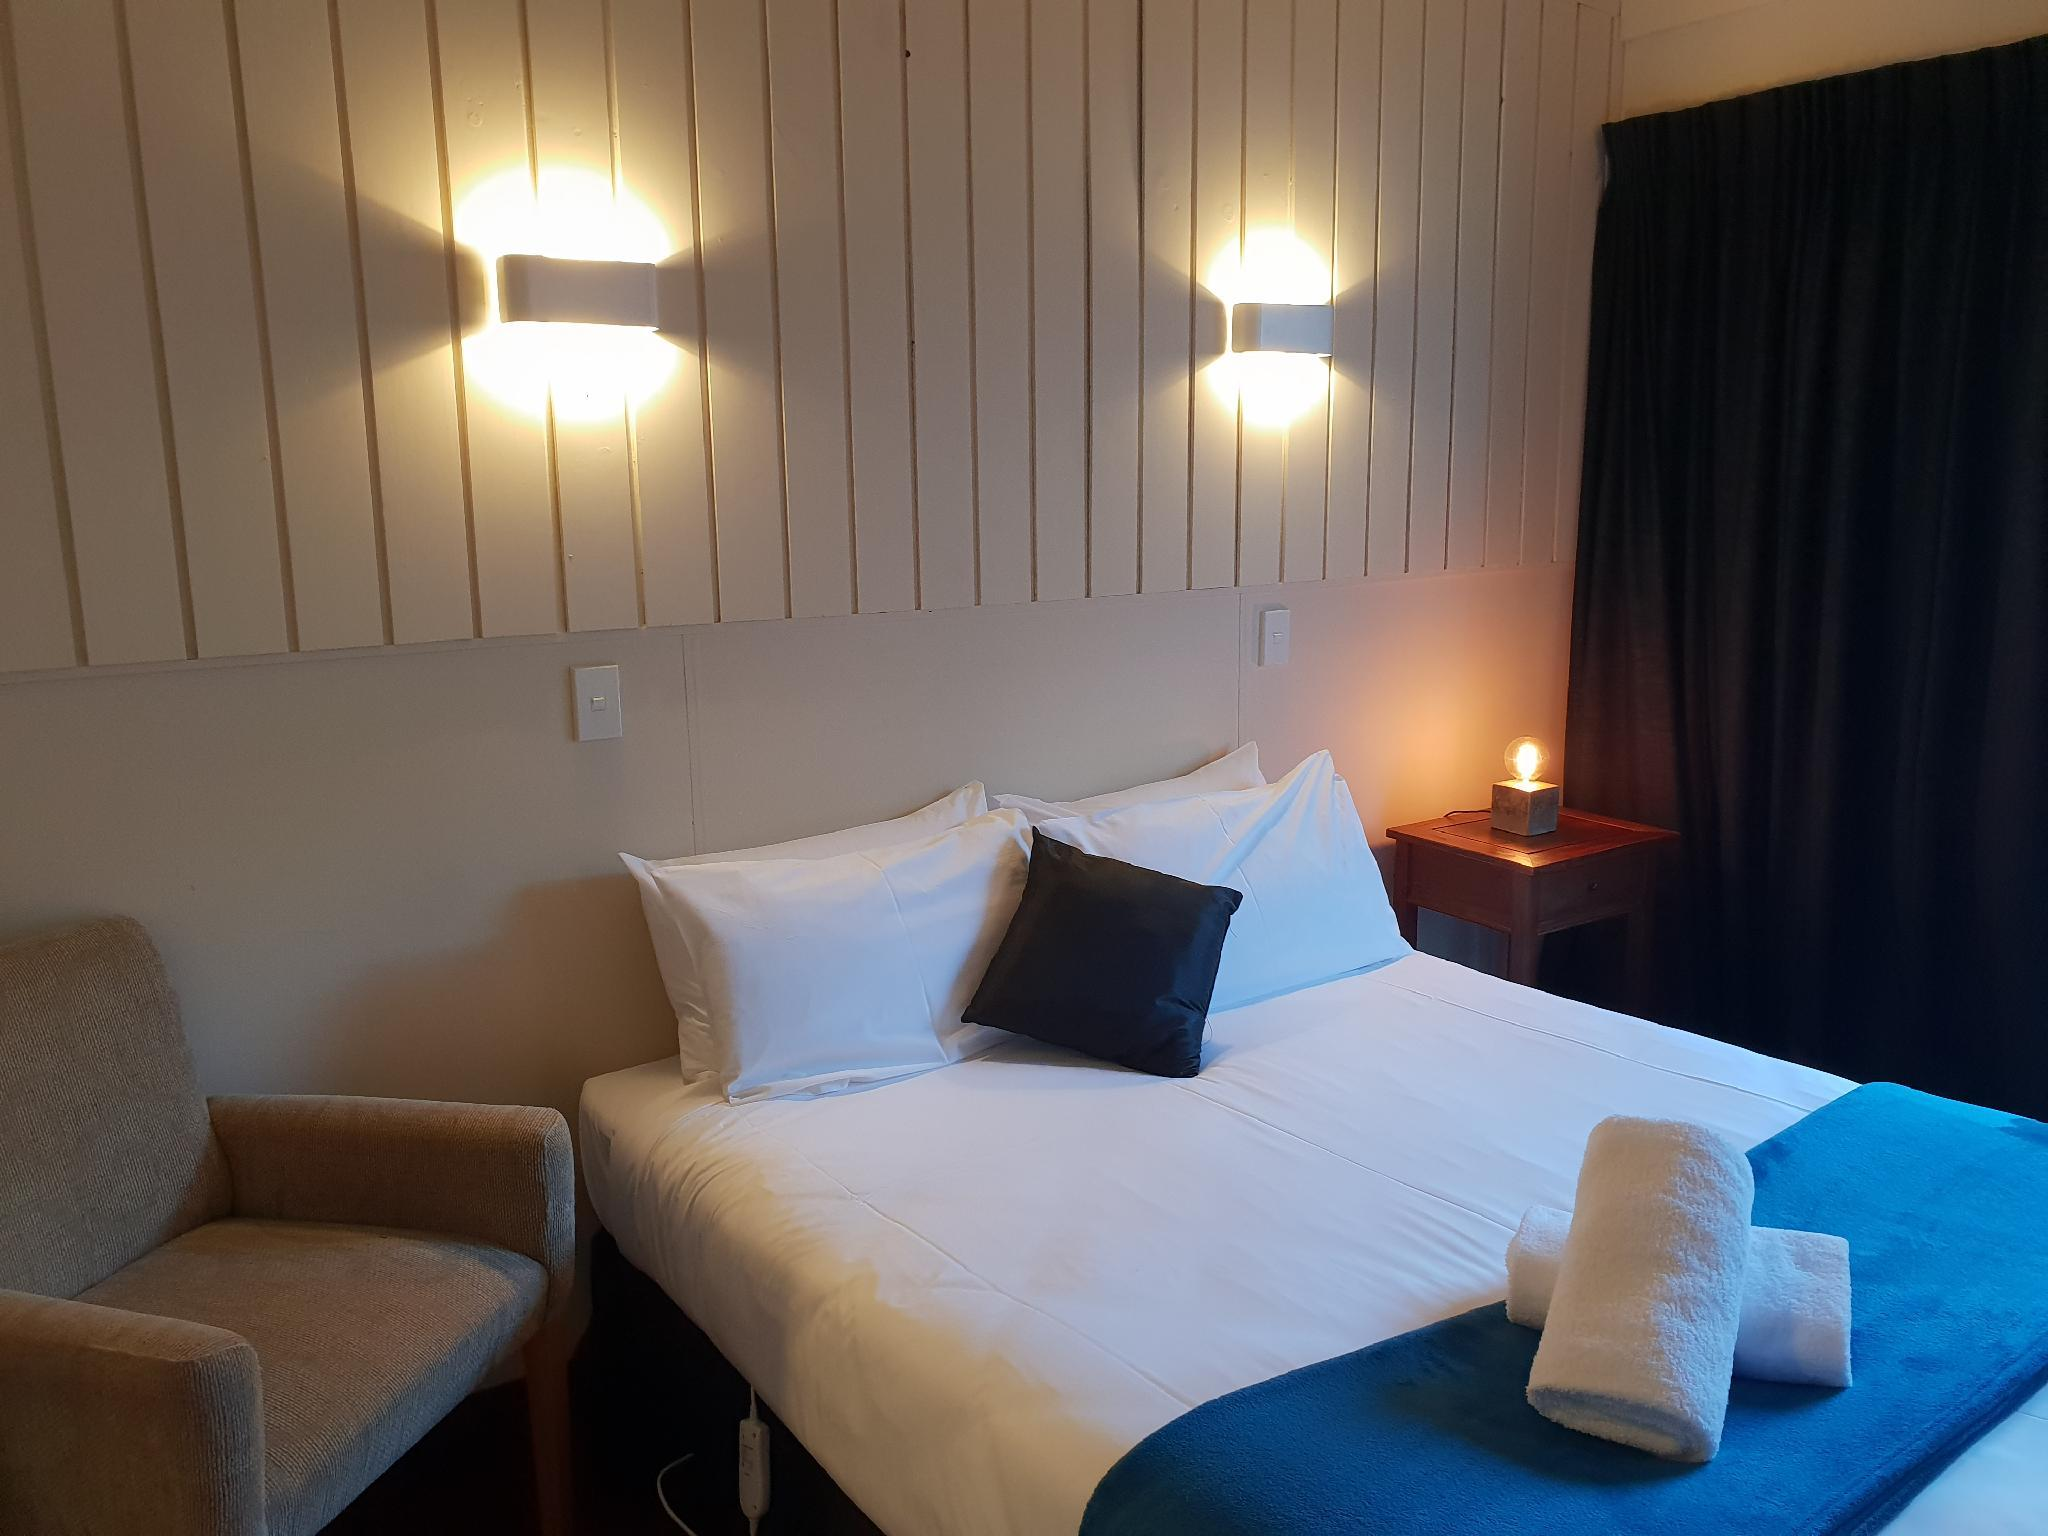 New Orleans Hotel, Queenstown-Lakes